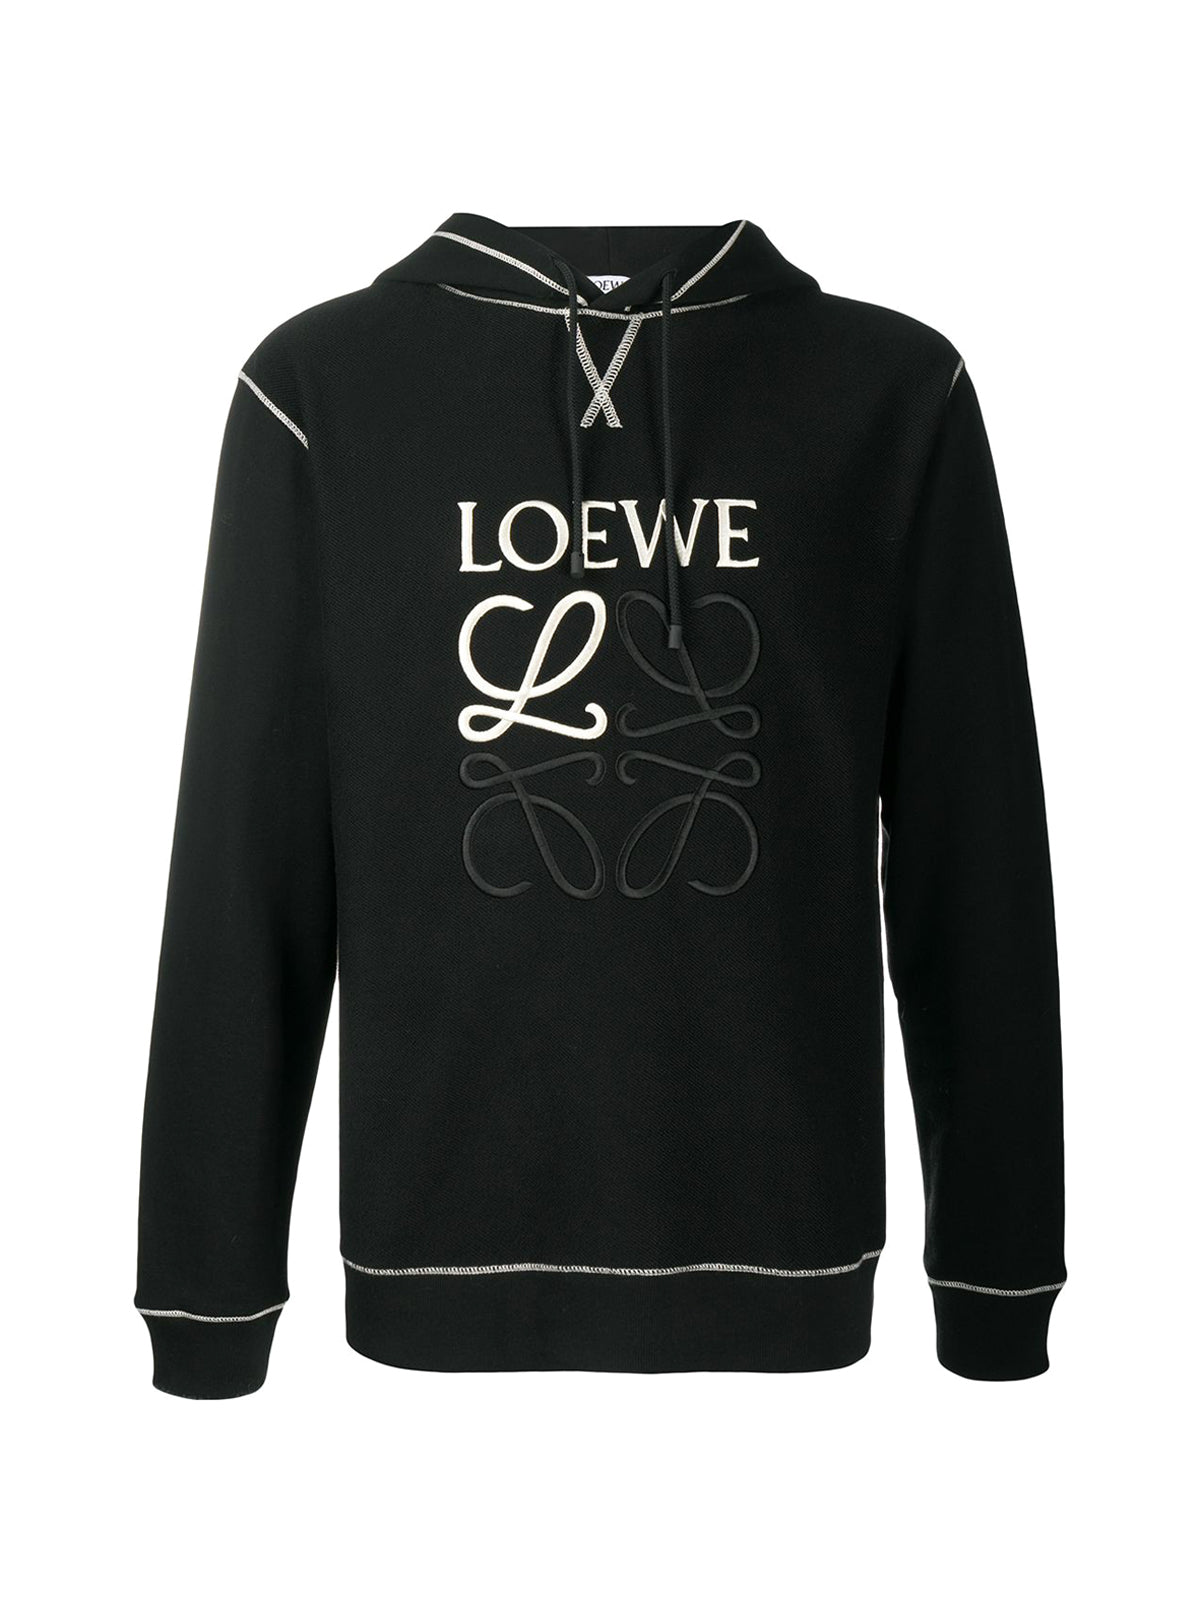 sweatshirt with embroidered hood